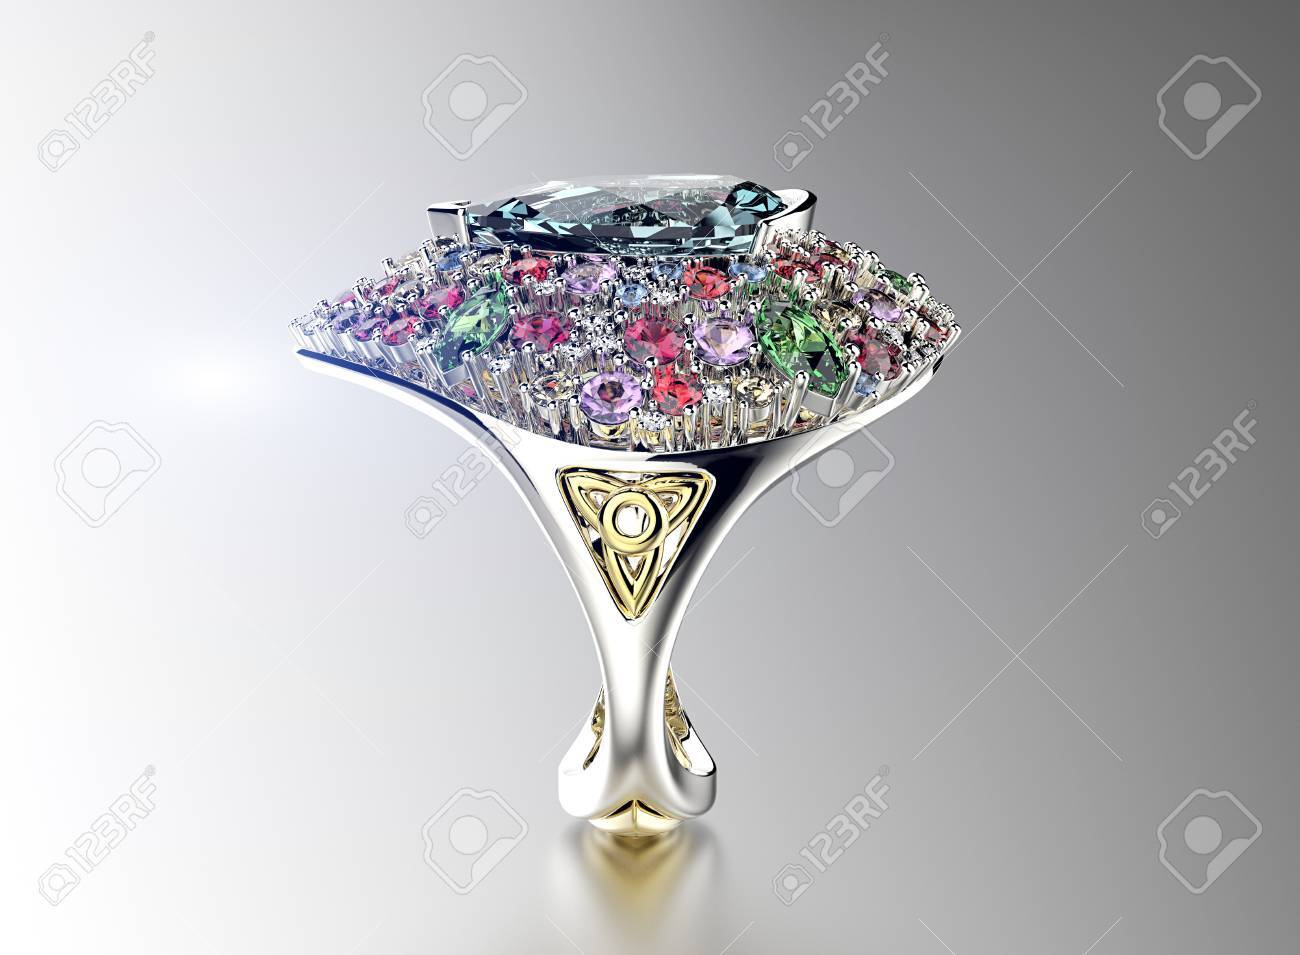 round twisted encrusted club plumb color the ring shapes creative halos use a with frame diamond designs of center different negative space bridal and cushion stones top like